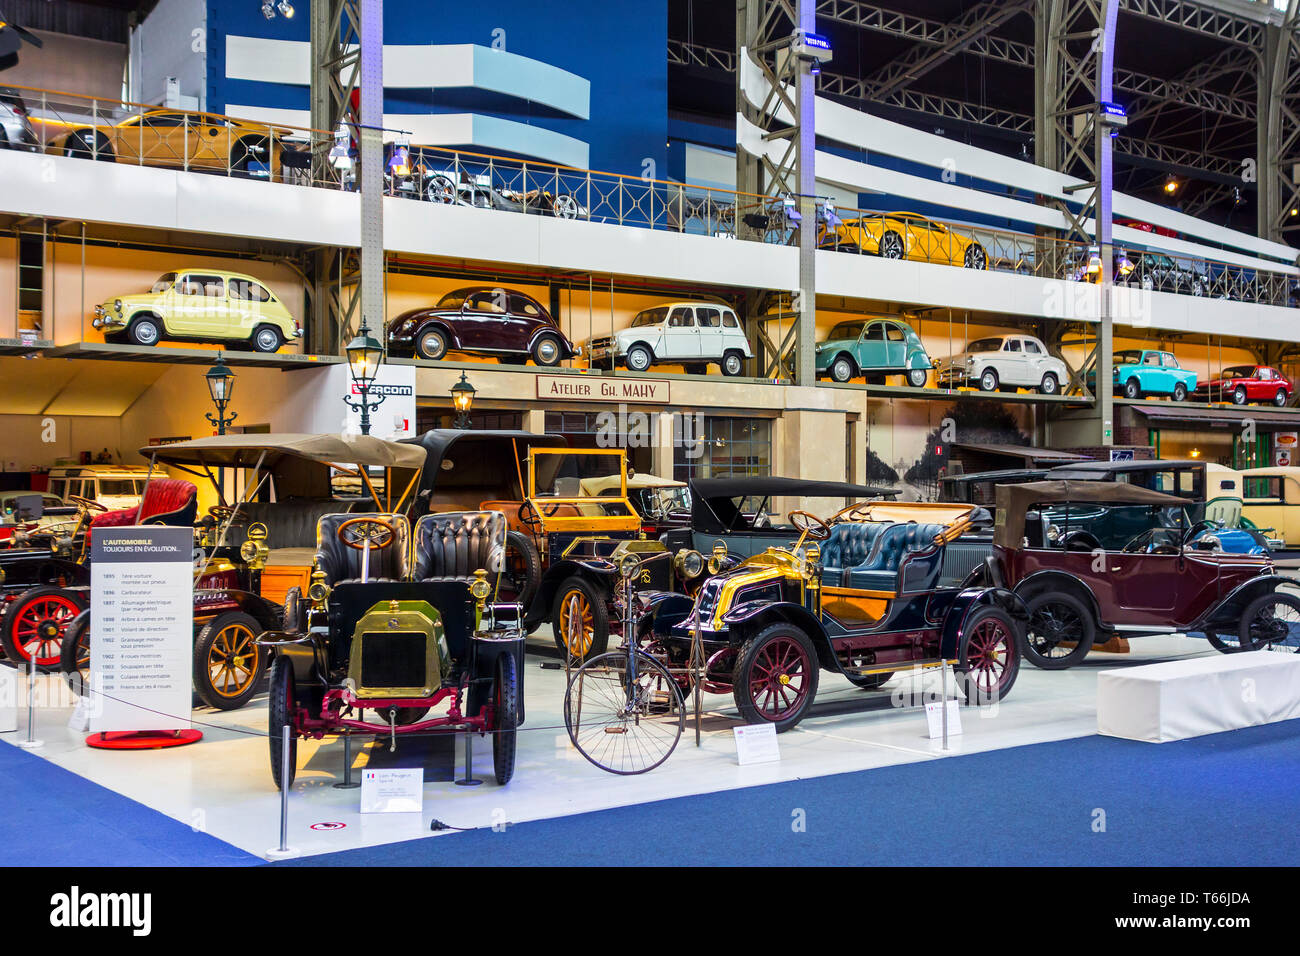 Collection of classic cars, antique vehicles and oldtimers at Autoworld, vintage car museum, Cinquantenaire Park in Brussels, Belgium - Stock Image